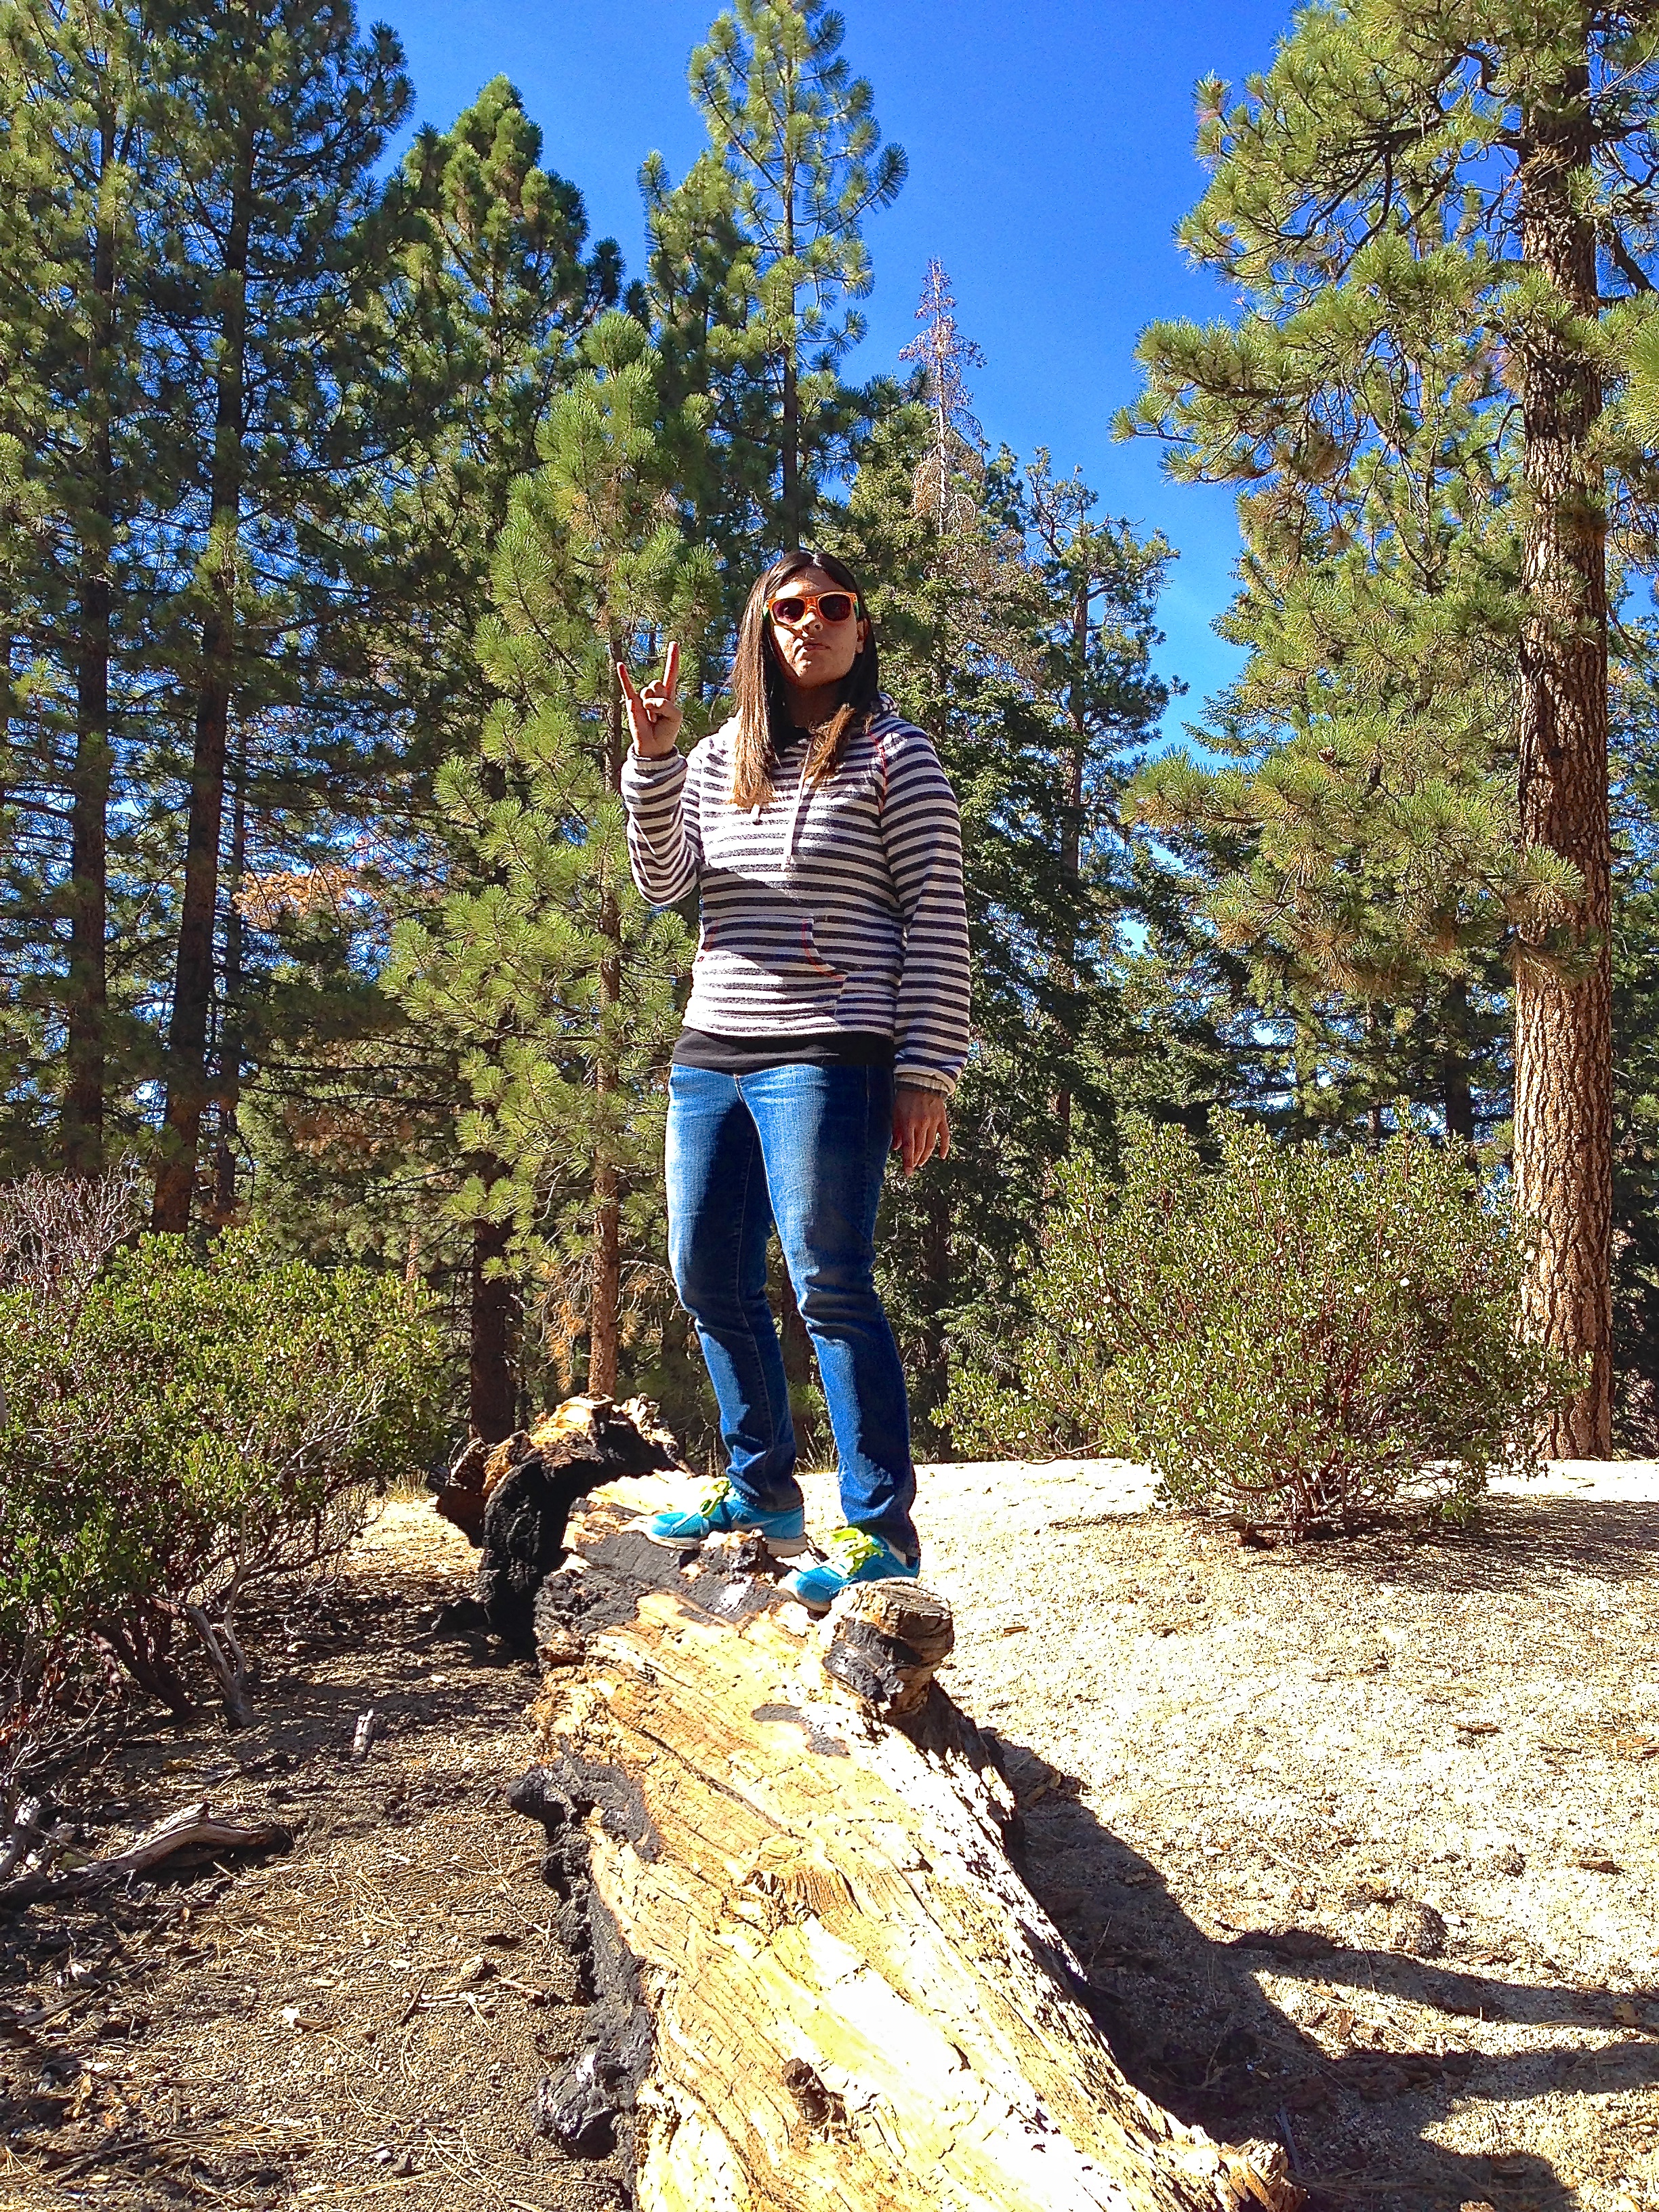 Best Big Dogs >> Camping in Big Bear With Your Dog | The OC Barkyard